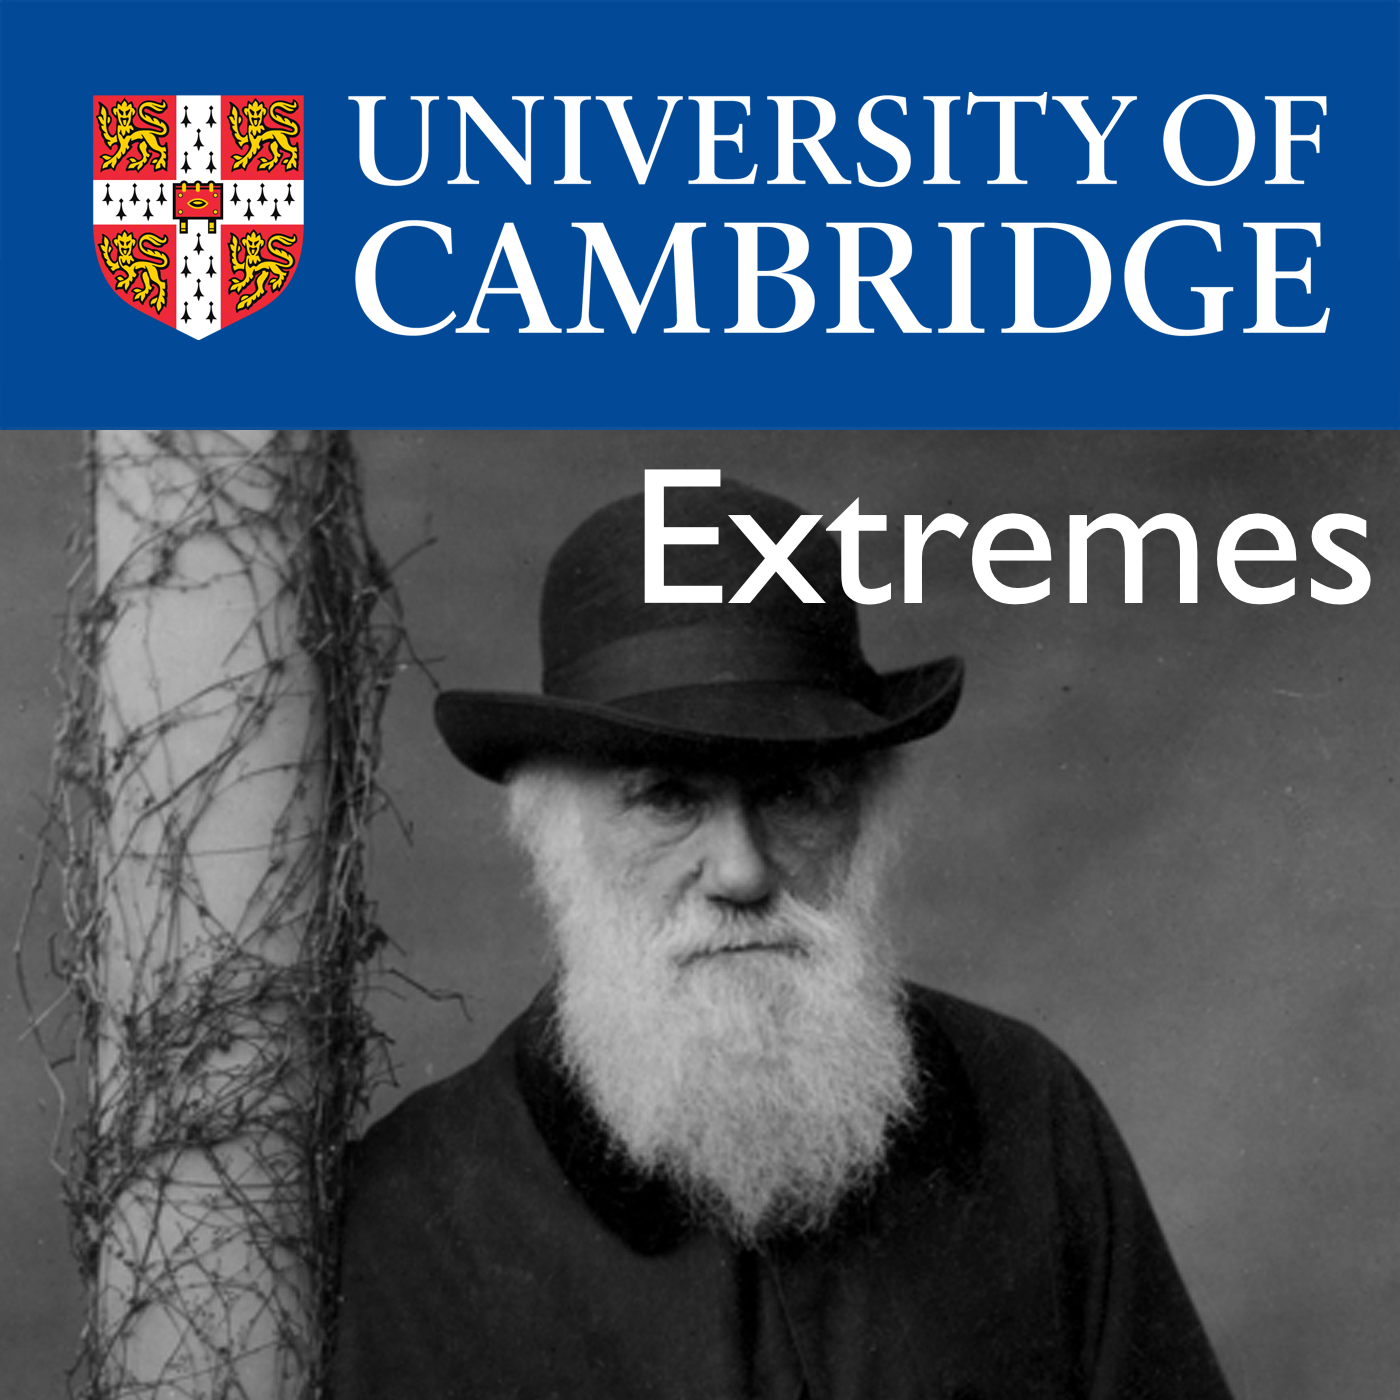 Extremes – Darwin College Lecture Series 2017's image